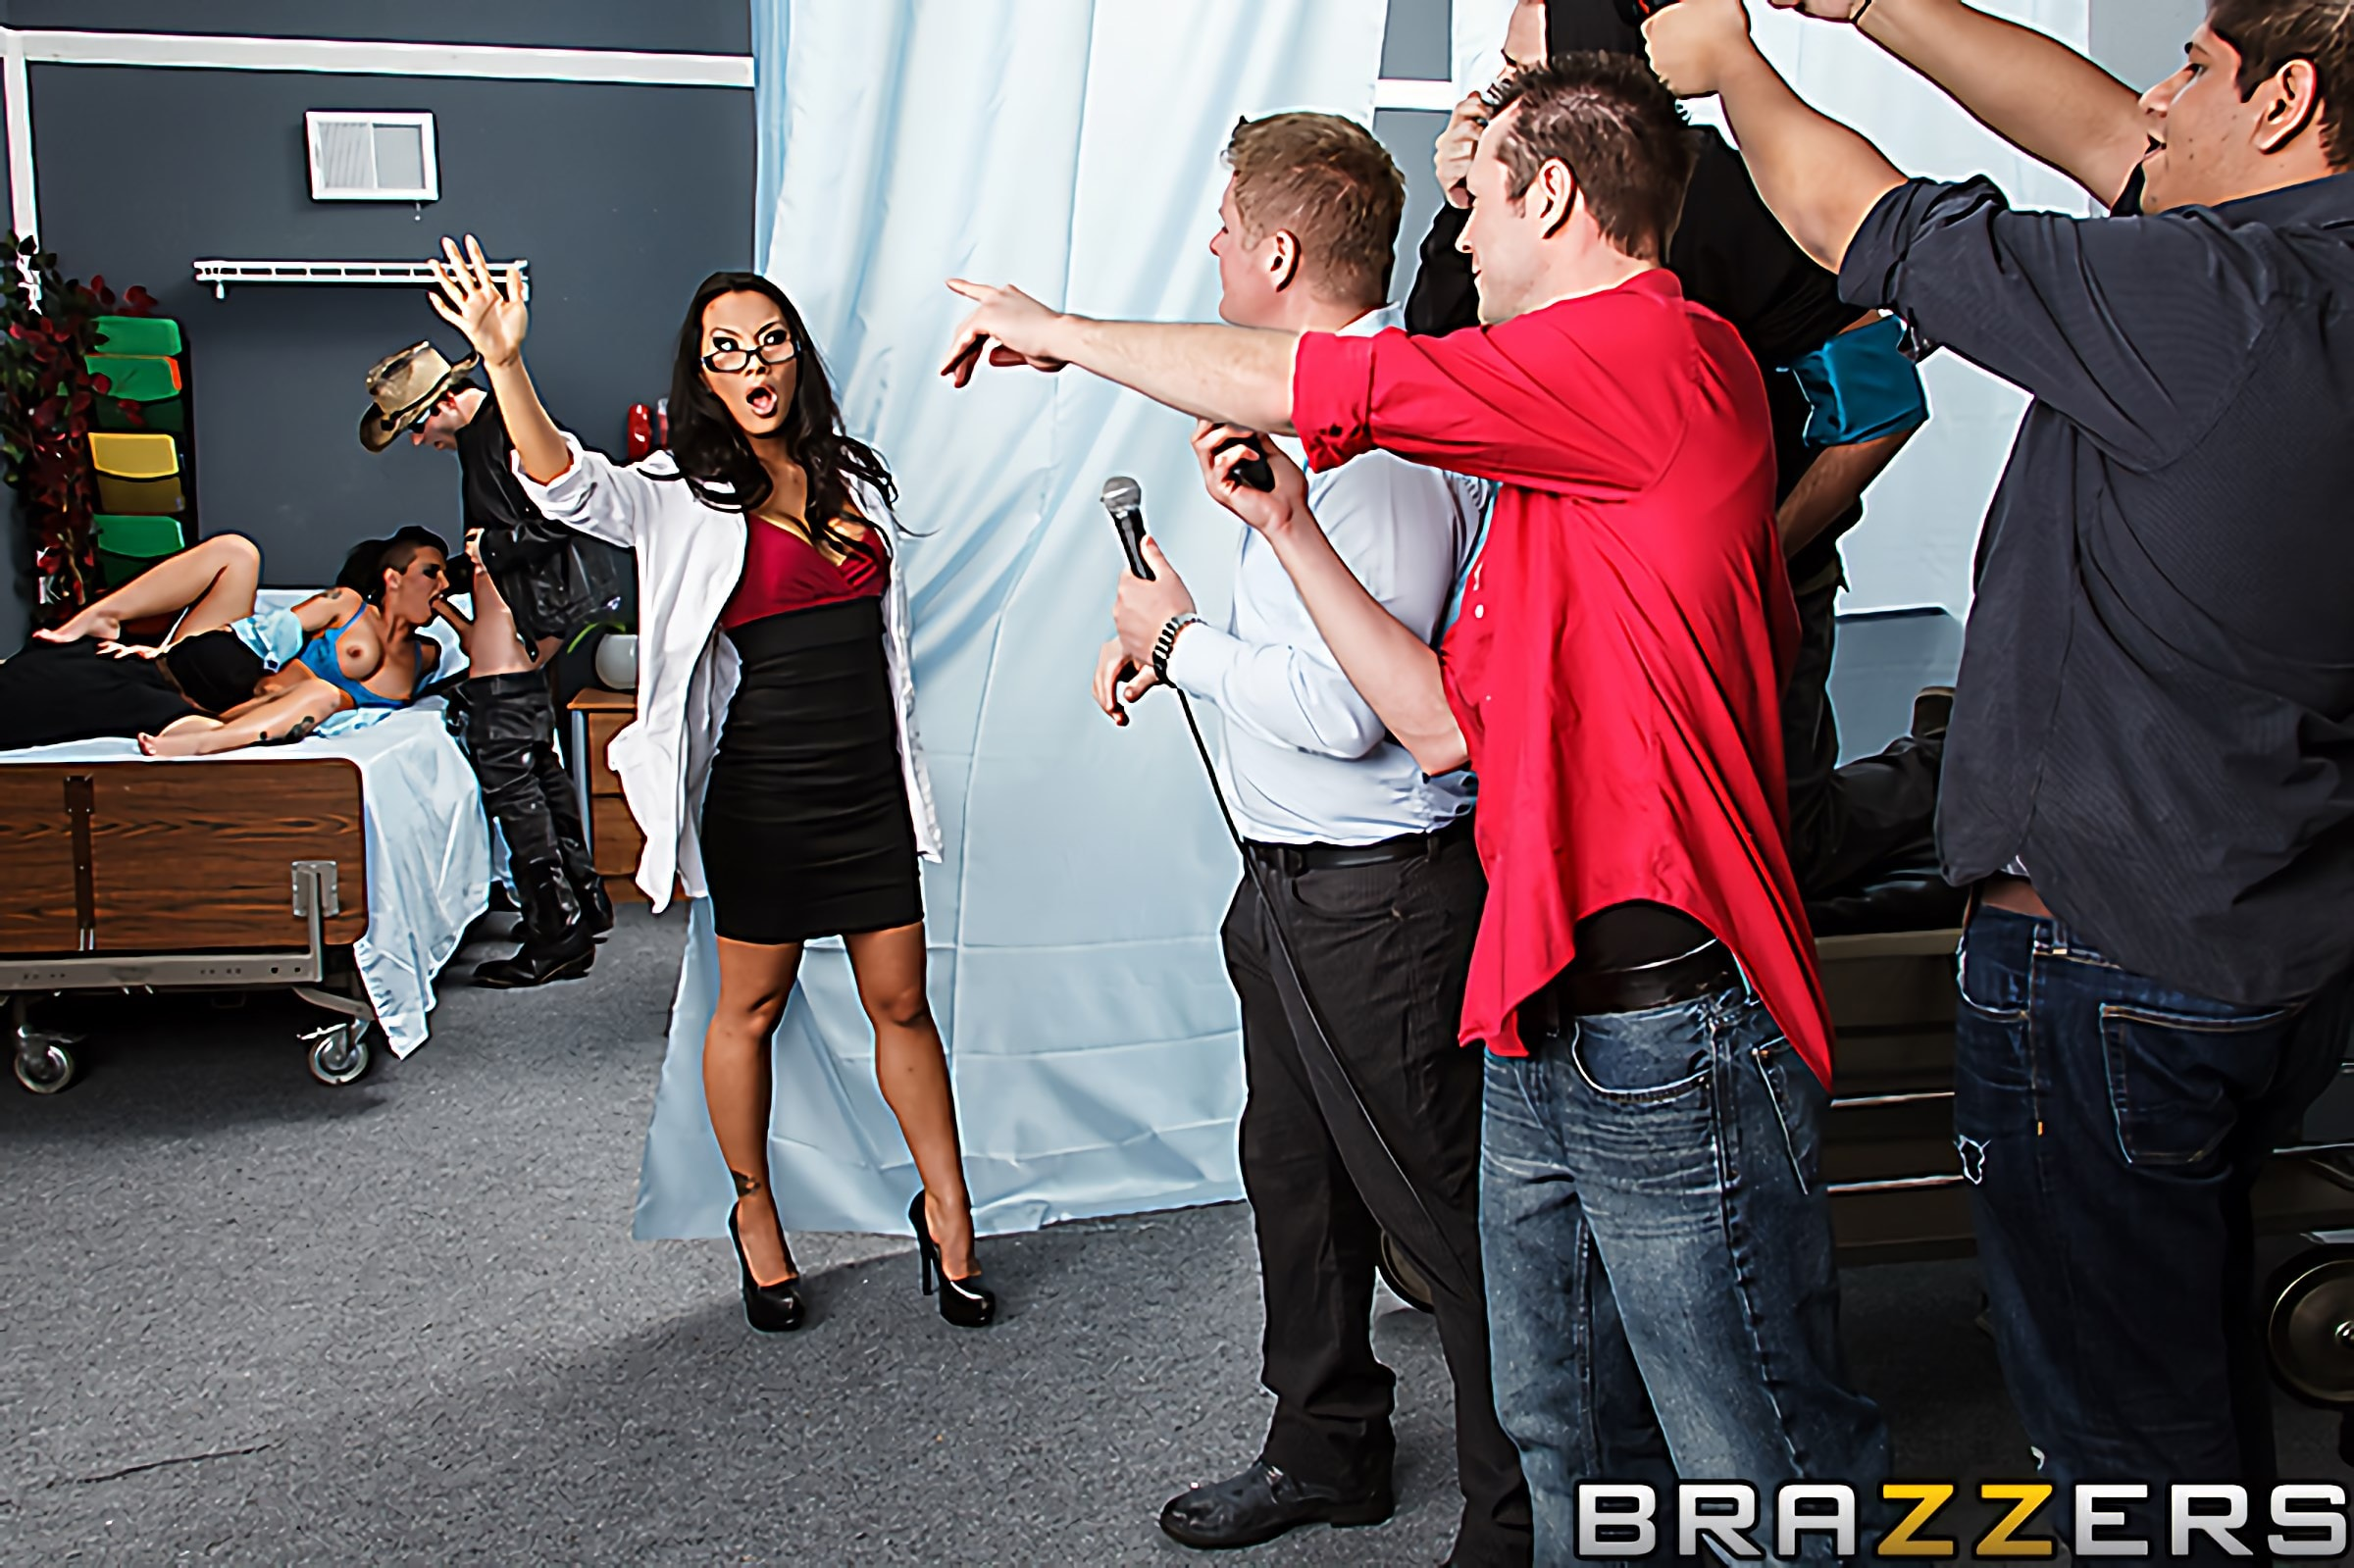 Brazzers 'I Still Havent Fucked What Im Looking For' starring Asa Akira (Photo 1)